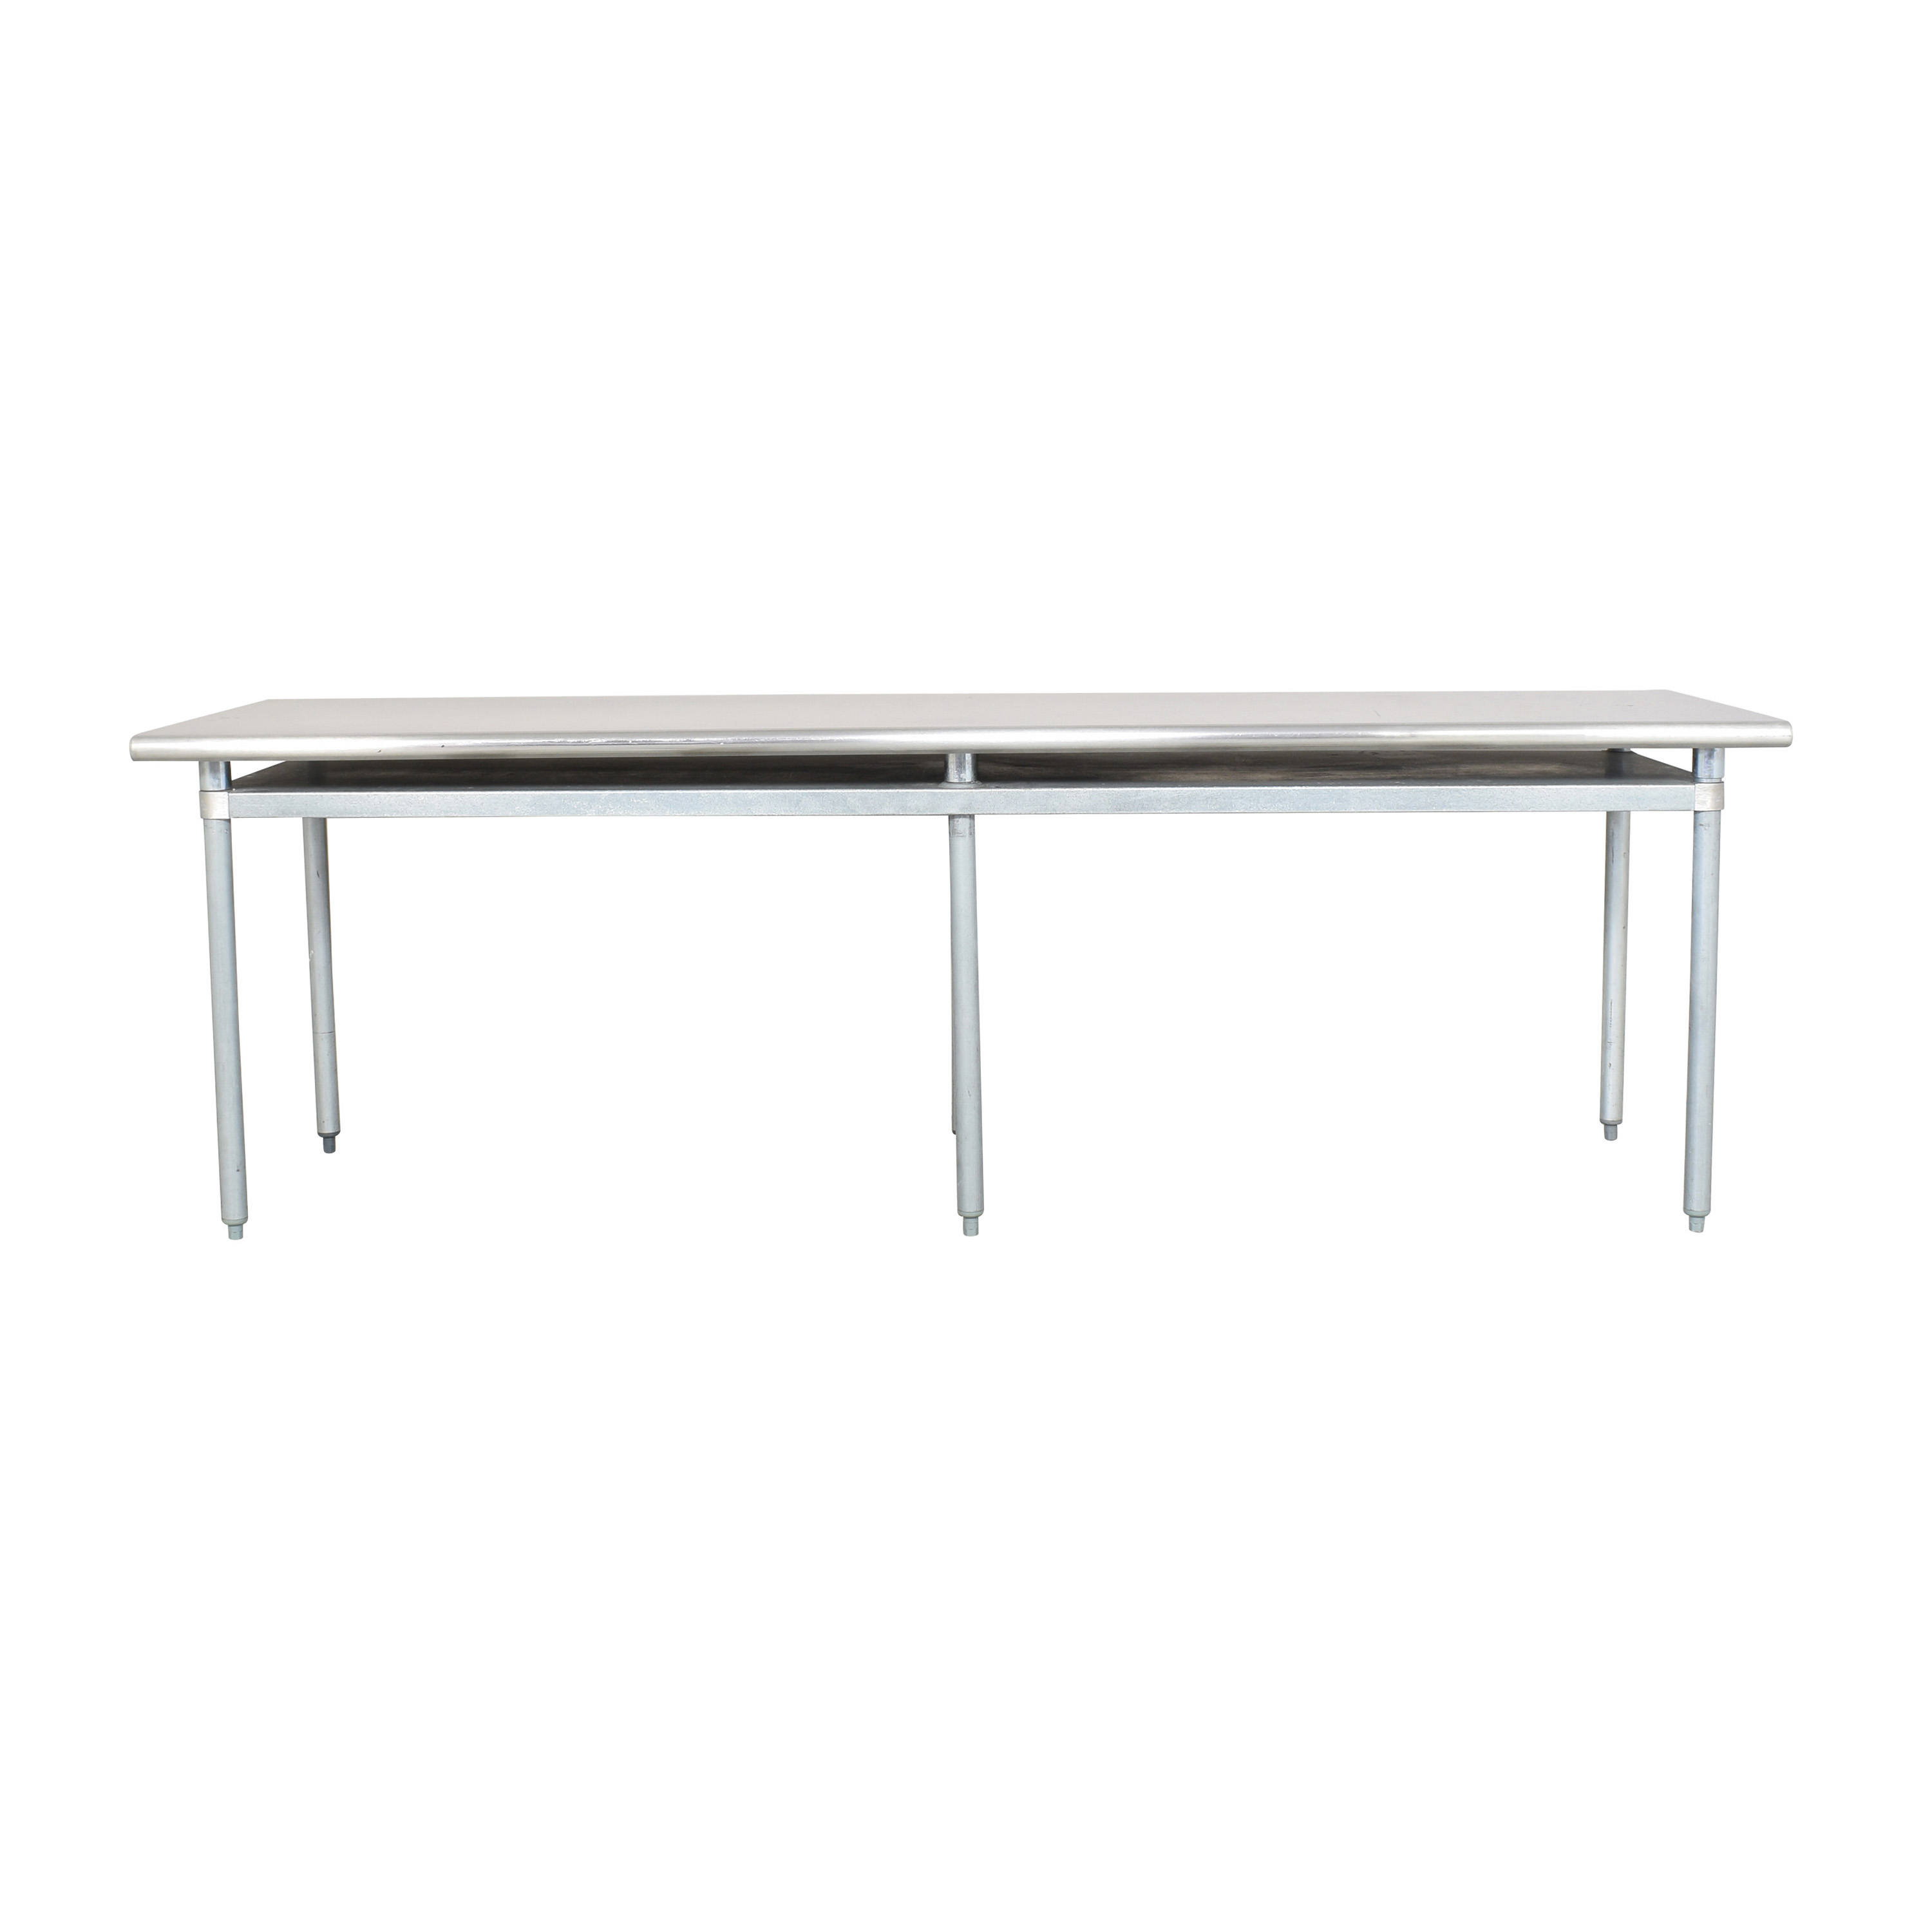 Advance Tabco Advance Tabco Industrial Work Table with Undershelf